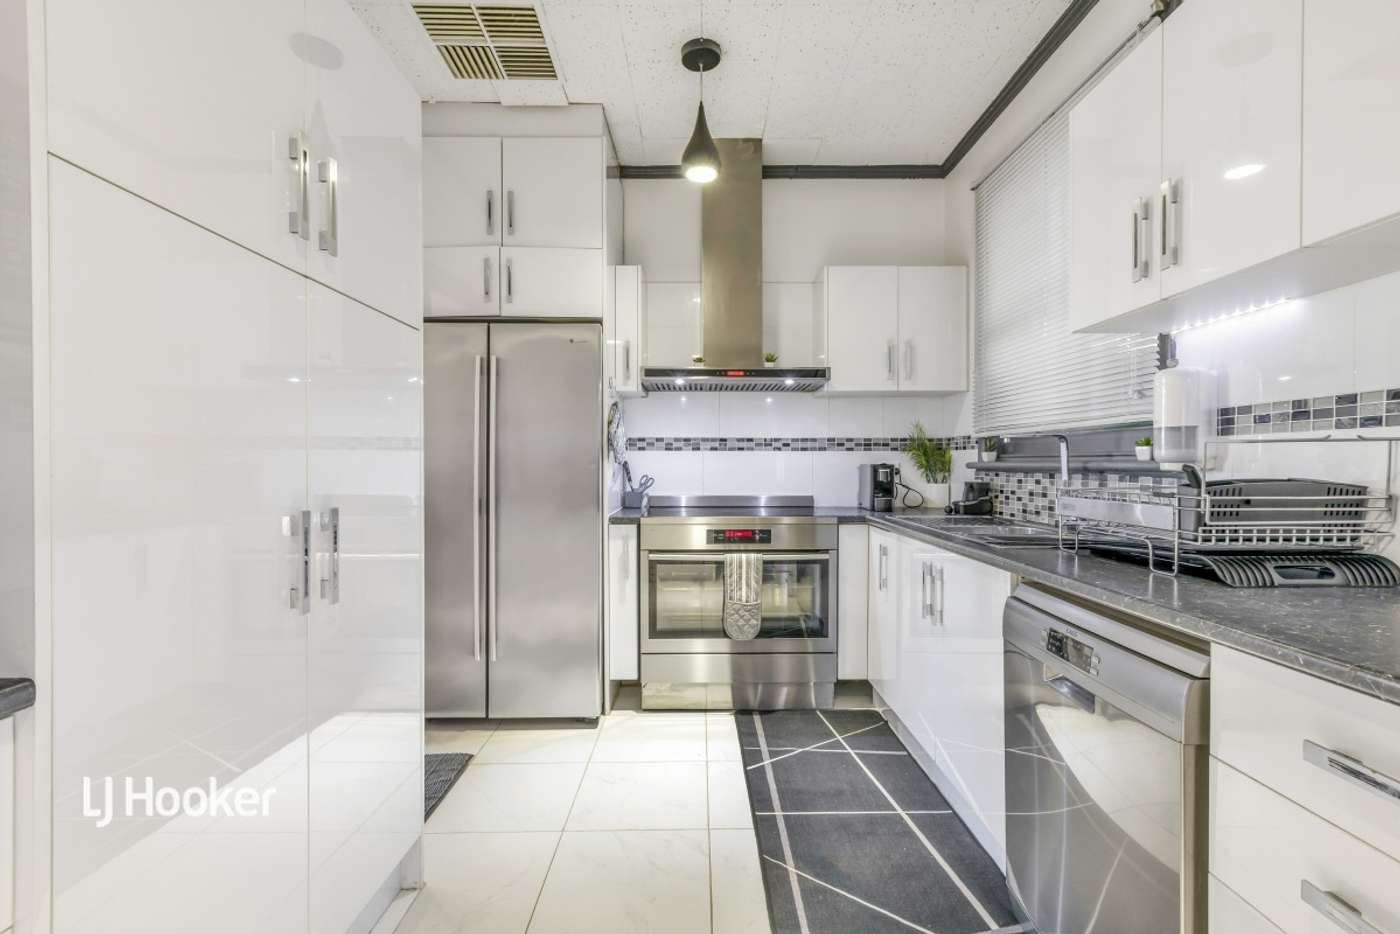 Sixth view of Homely house listing, 2 Marleycombe Road, Elizabeth Vale SA 5112